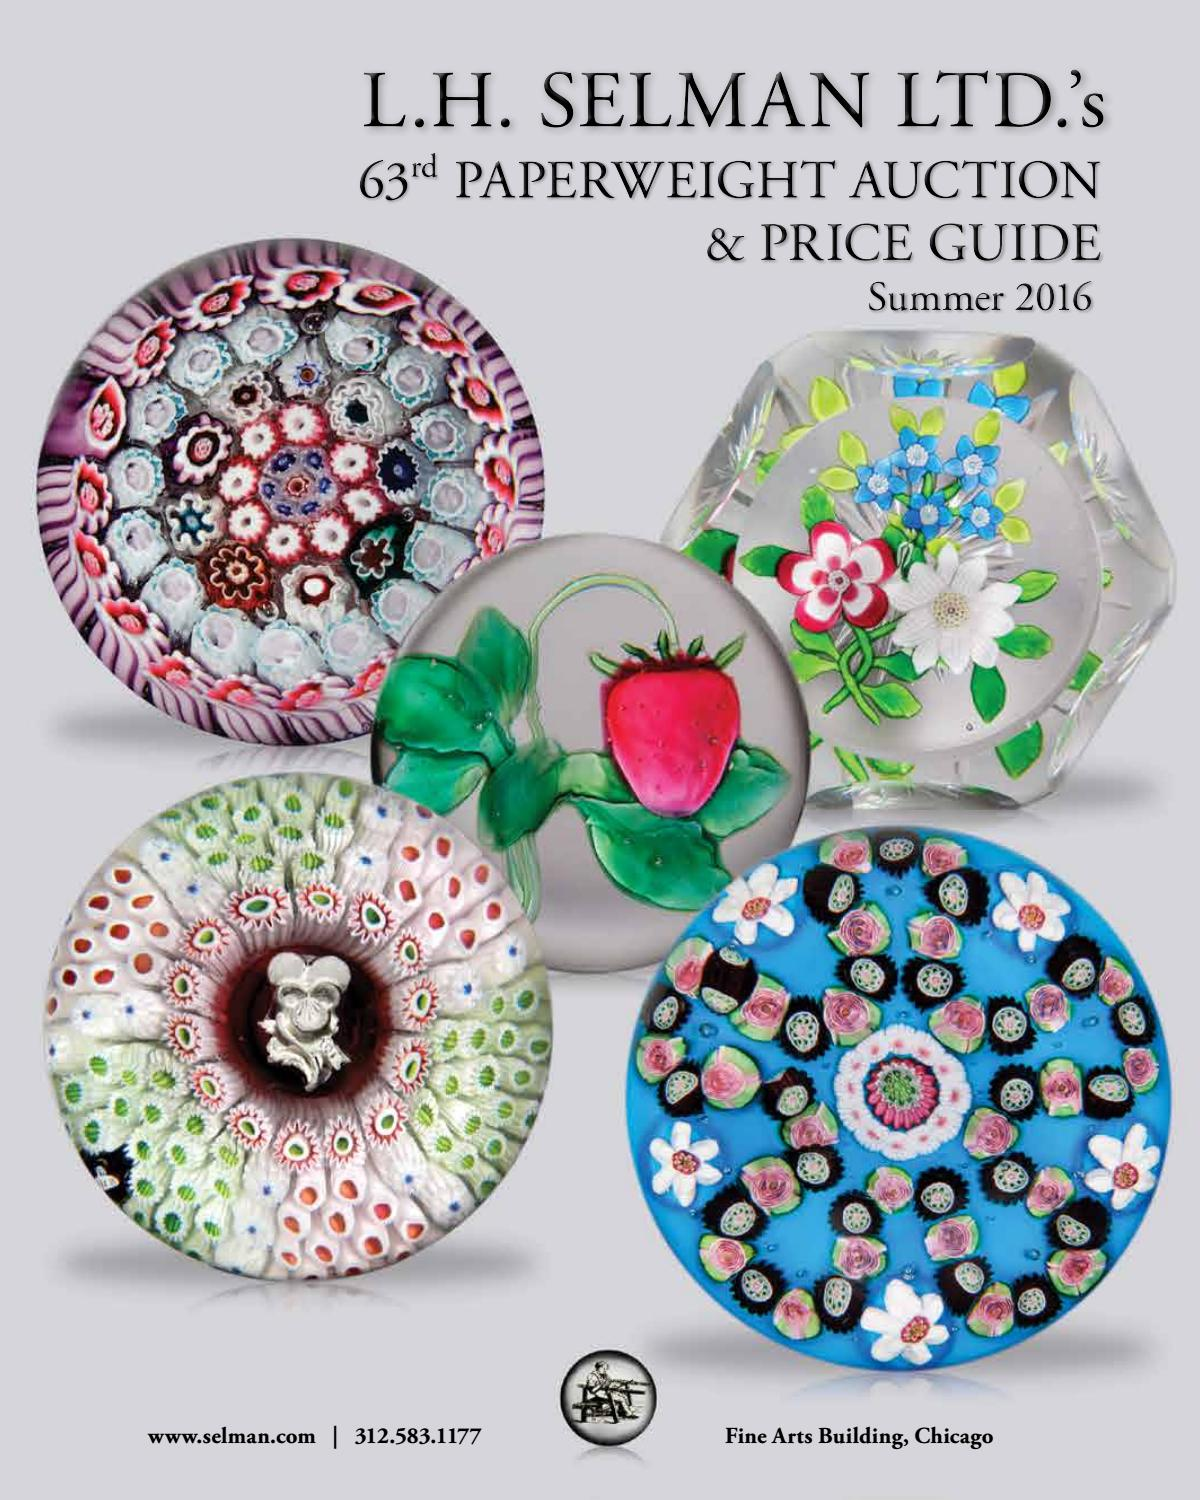 Lh Selman Ltds 63rd Paperweight Auction Price Guide Summer